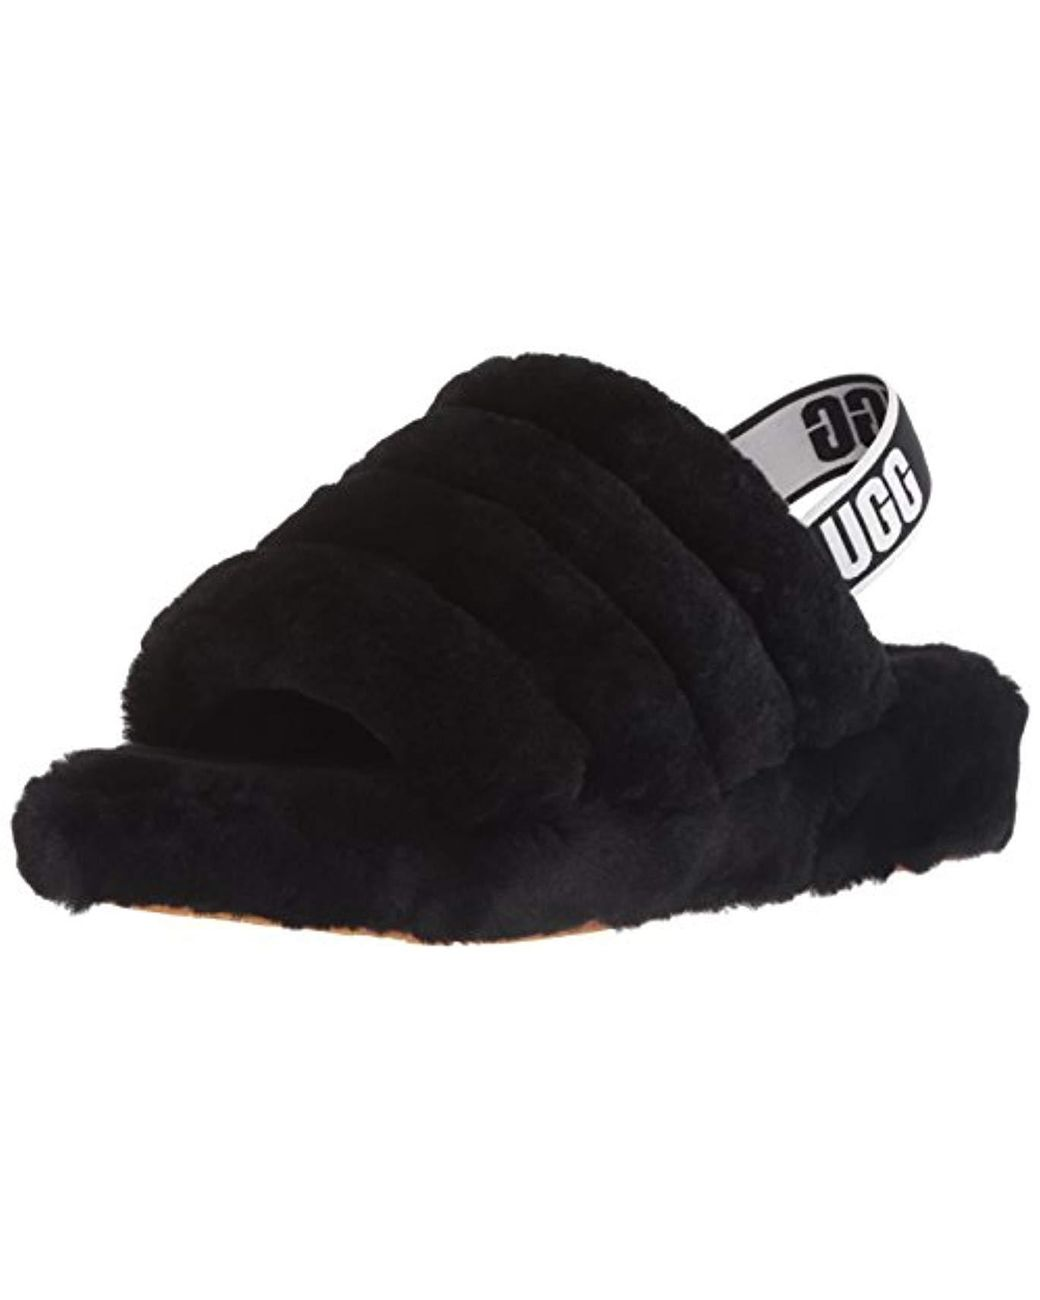 018a15f96 UGG Fluff Yeah Slide in Black - Save 38% - Lyst